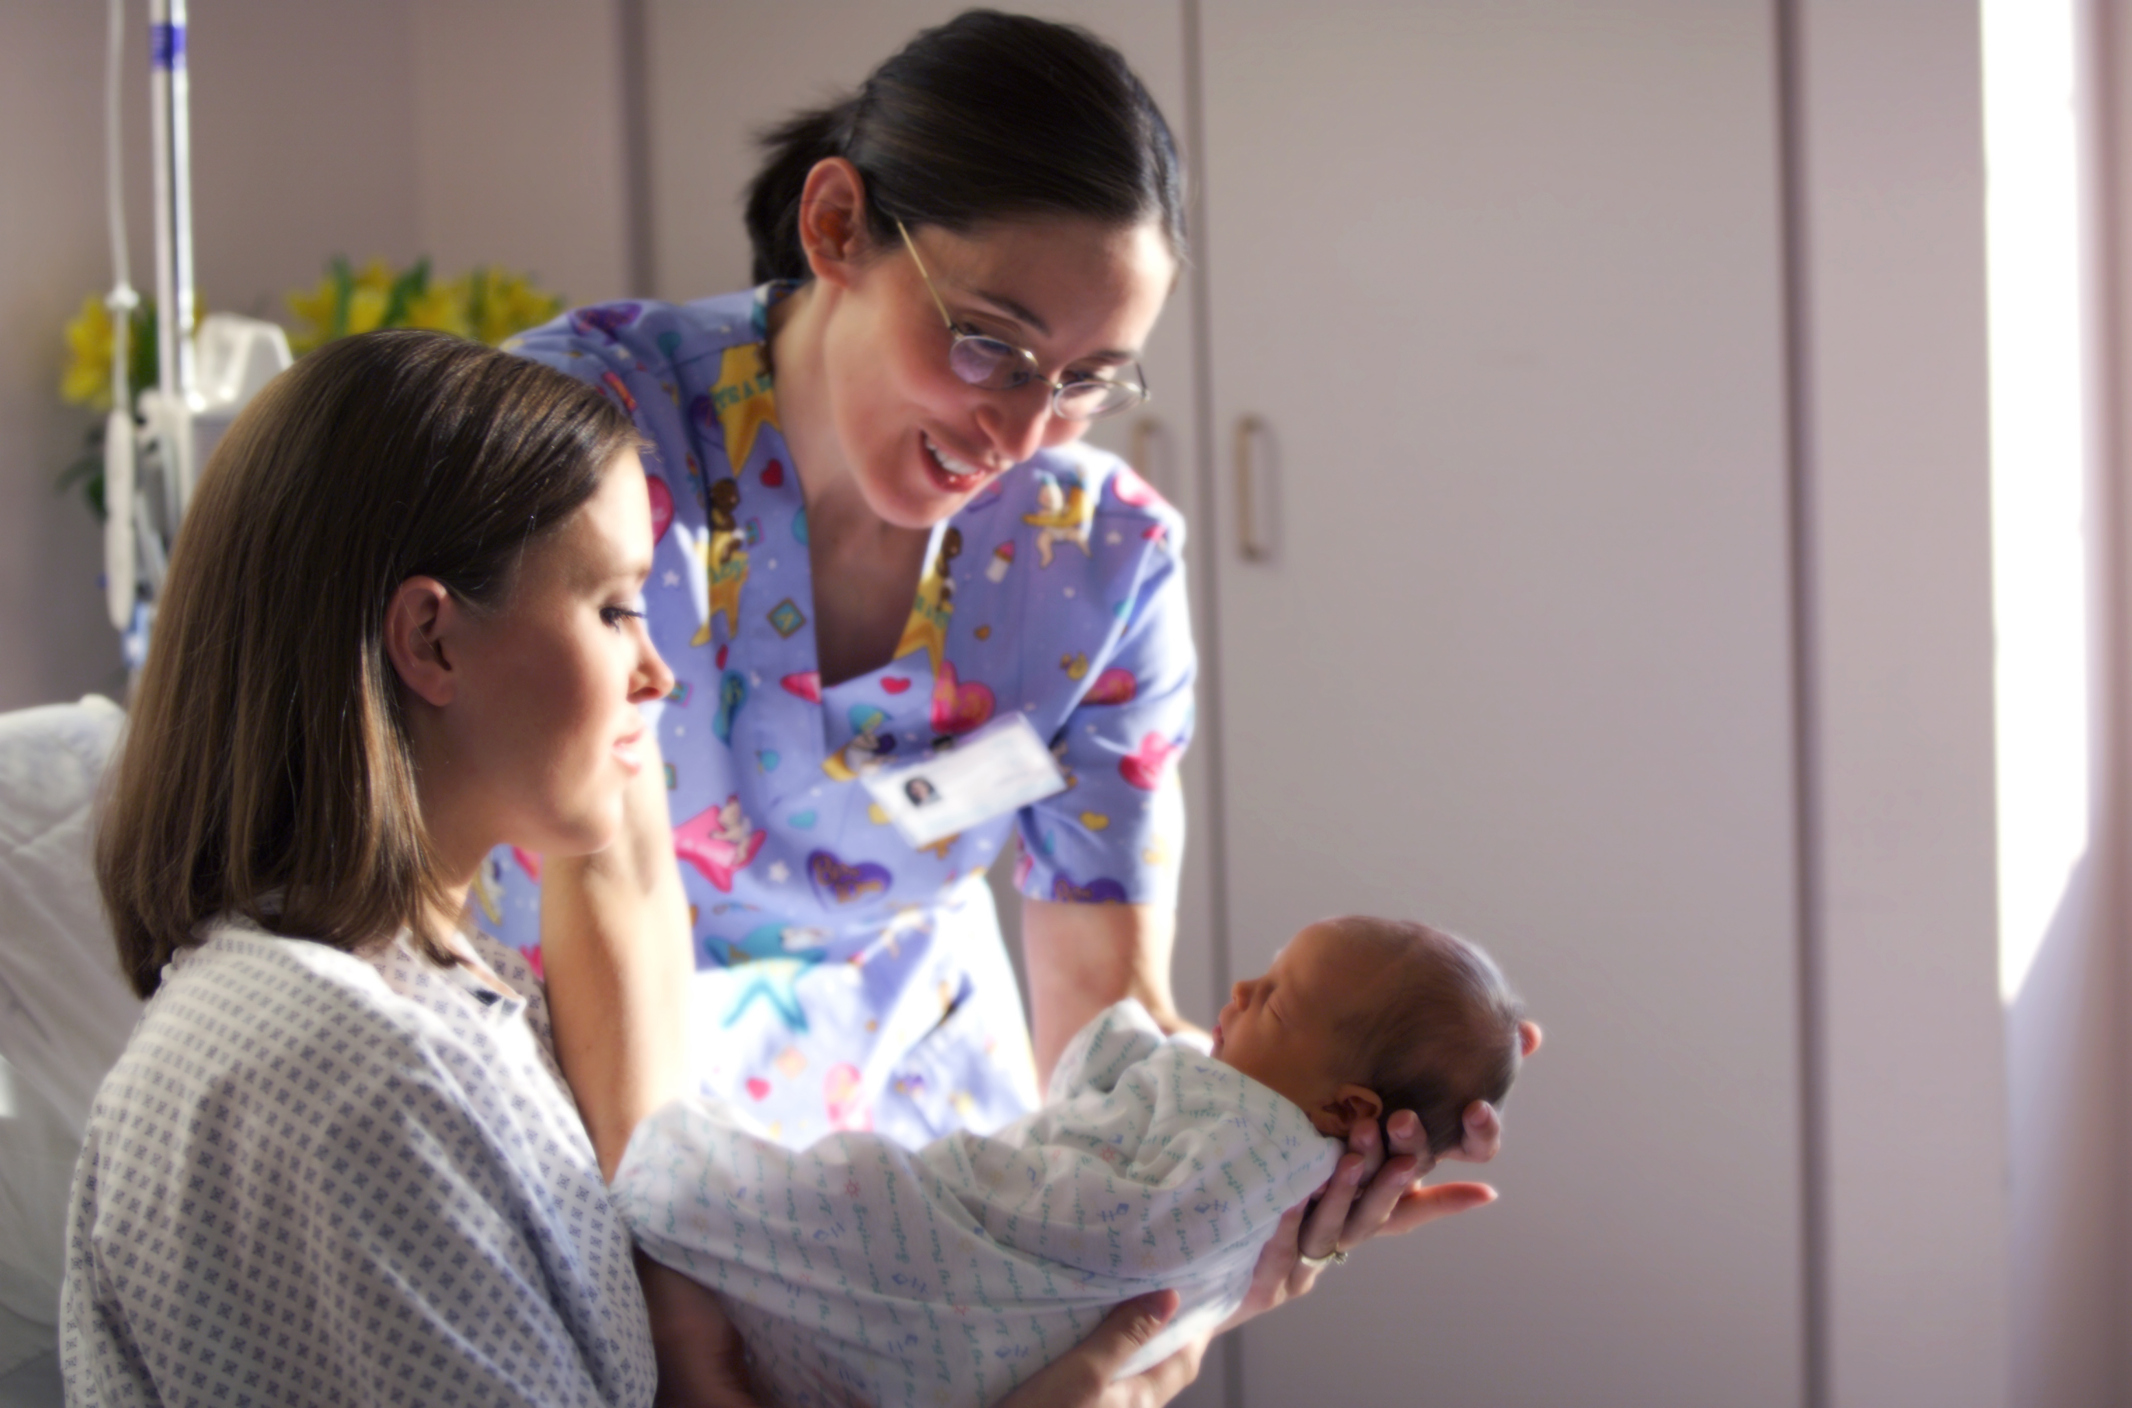 chat up your nicu nurse